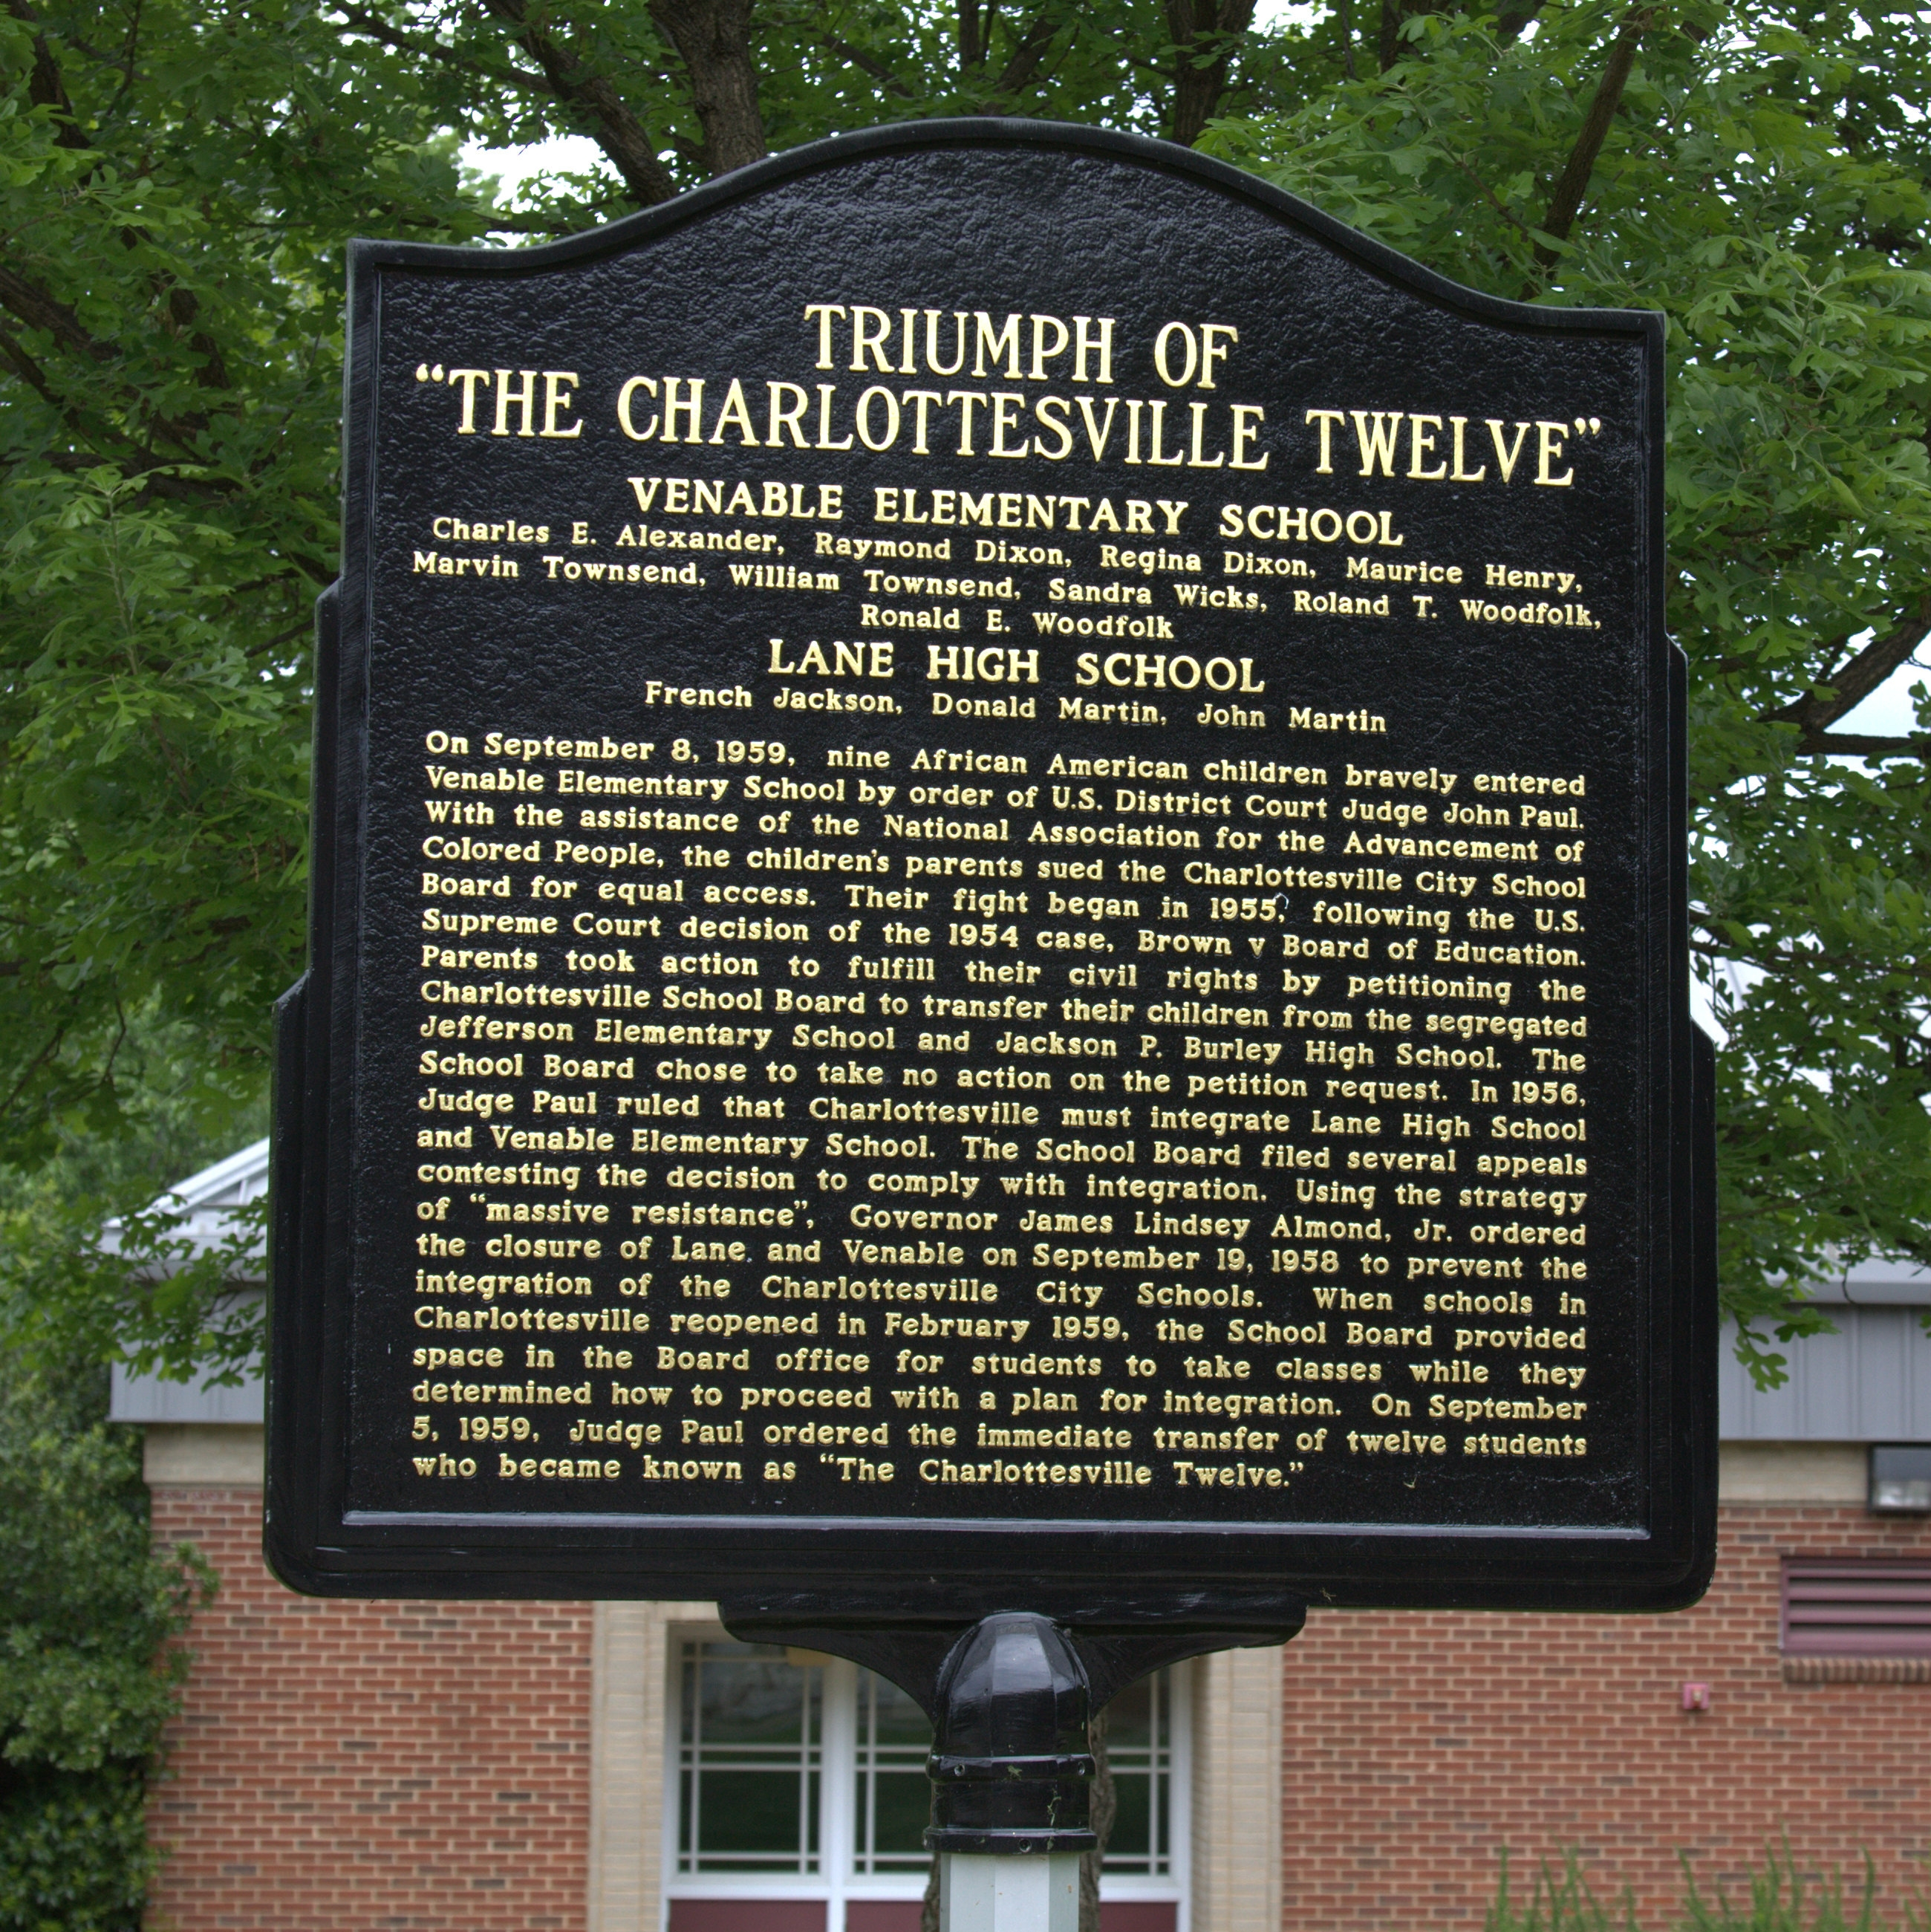 "Triumph of ""The Charlottesville Twelve"" Marker"